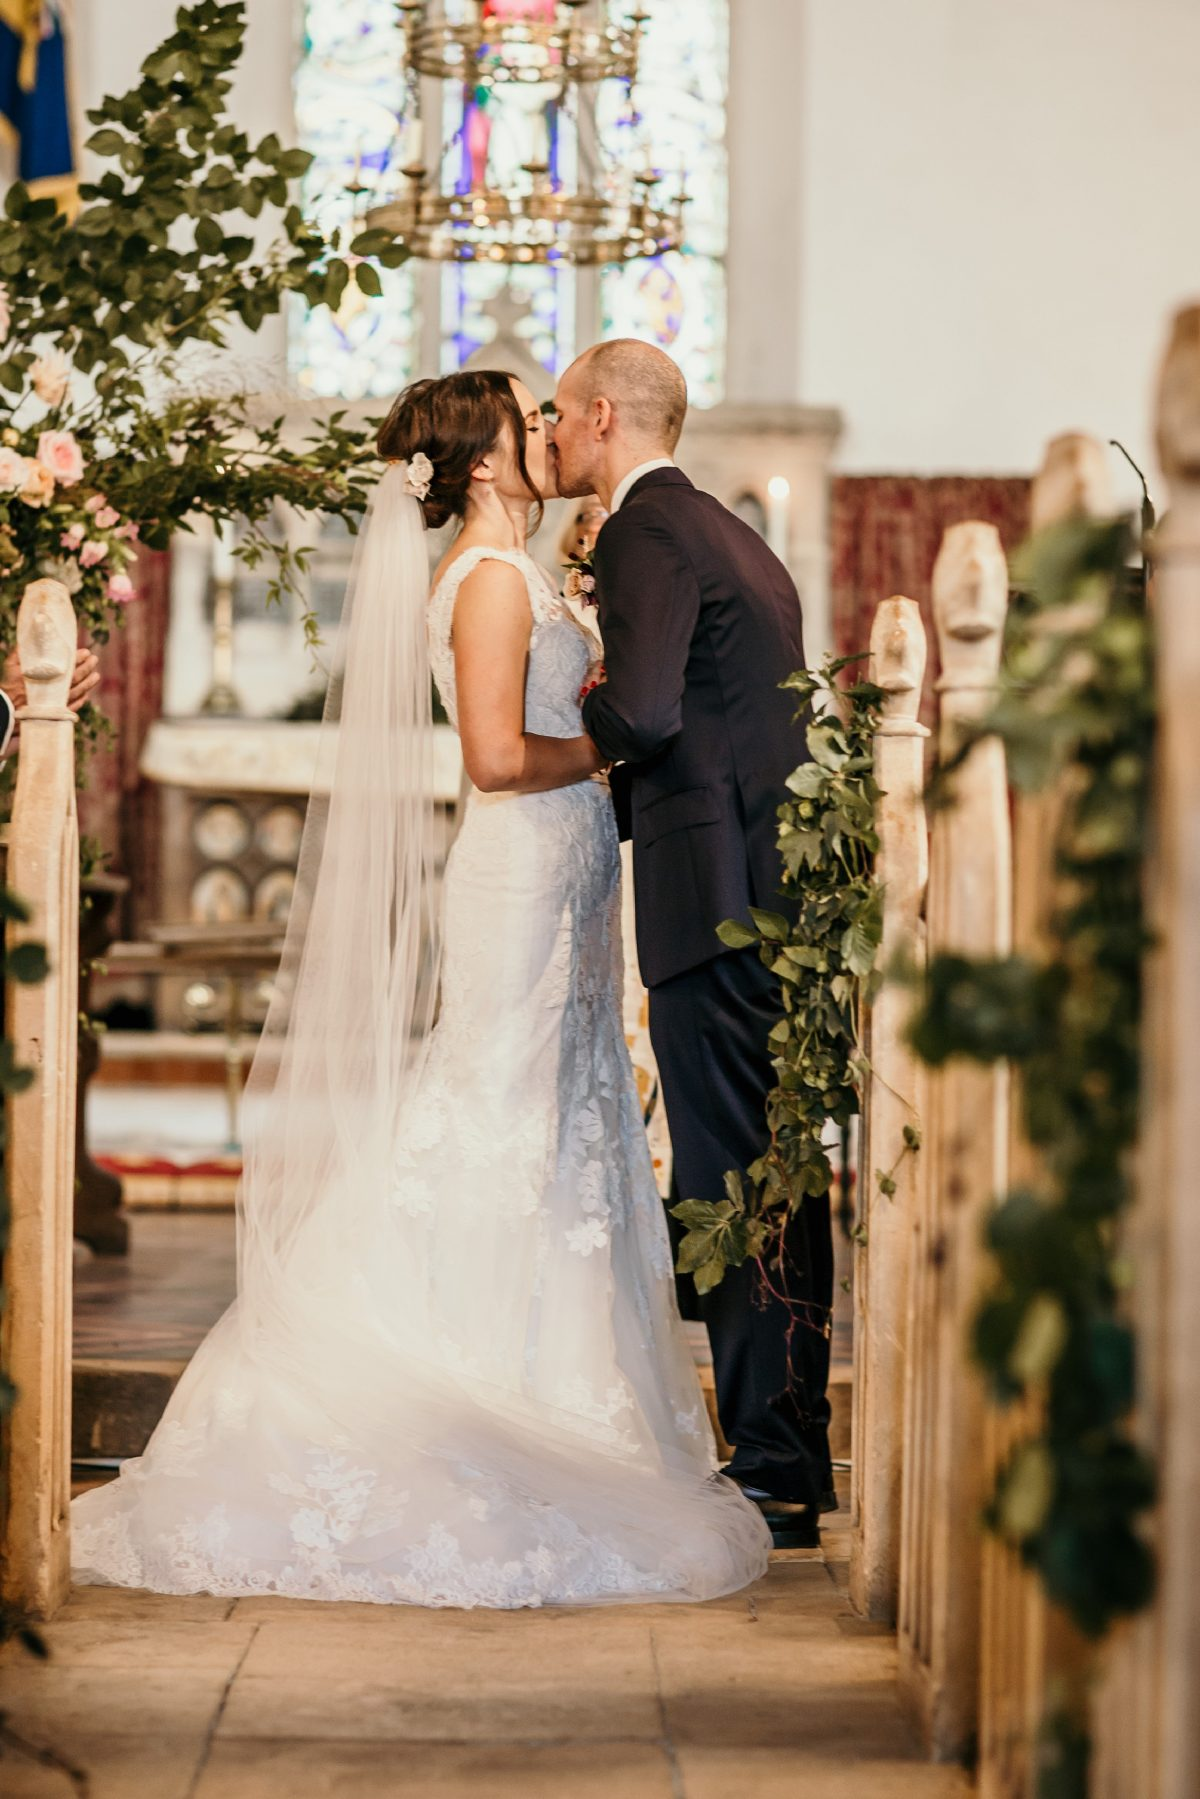 bride and groom first kiss at Merriscourt Barn Wedding venue by Cotswolds wedding photographer